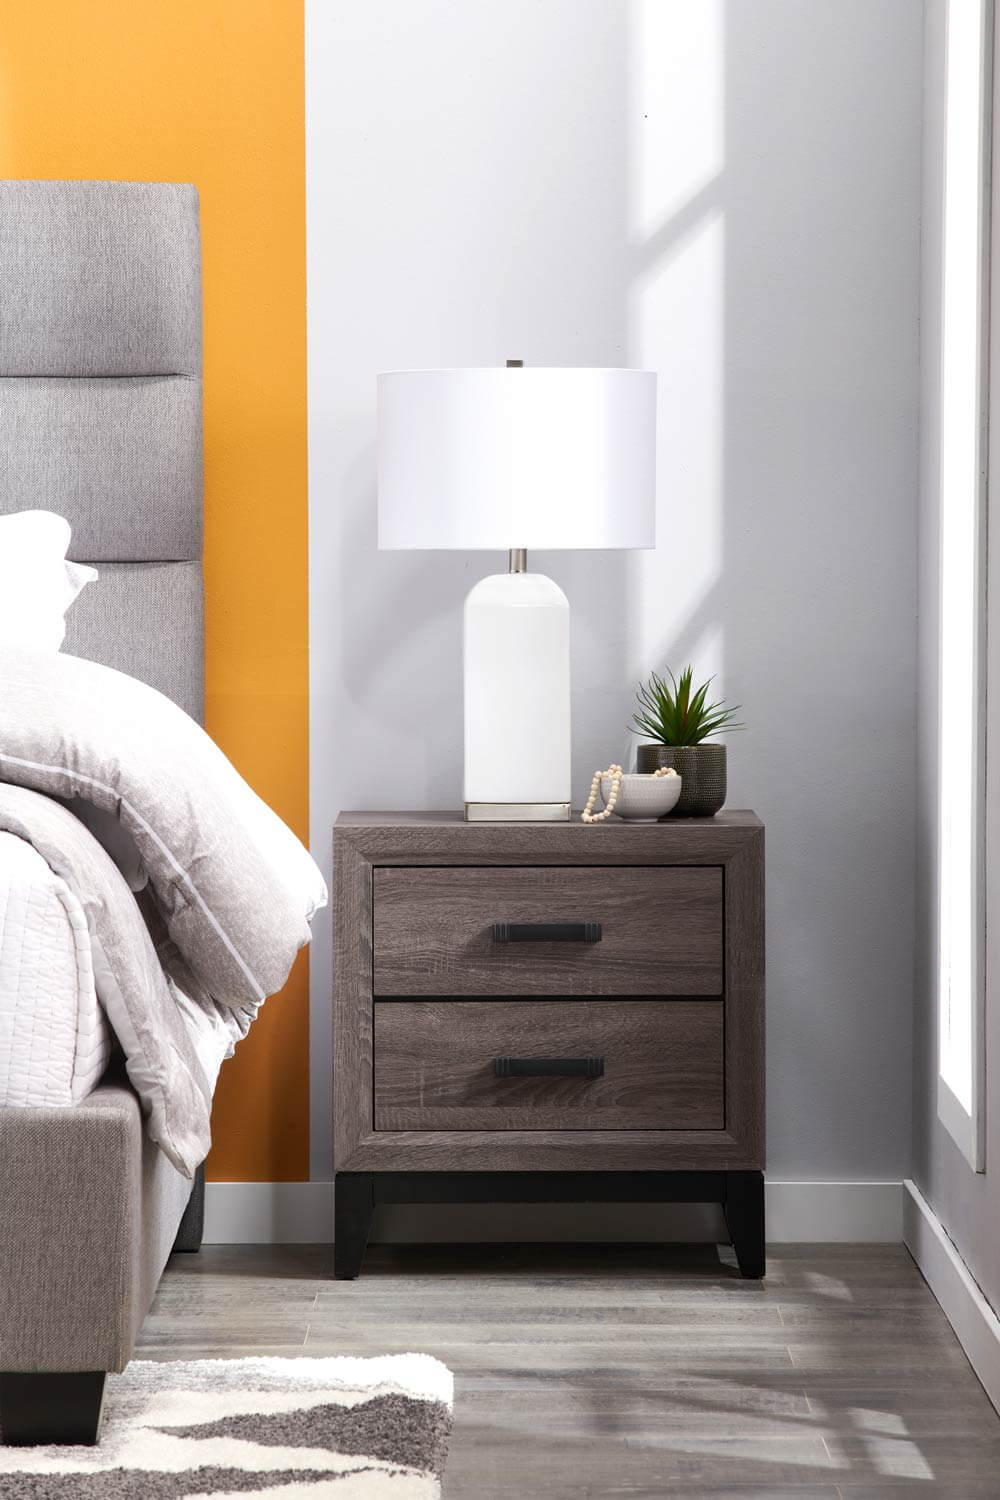 Boutique Bedroom bedside table and lamps.